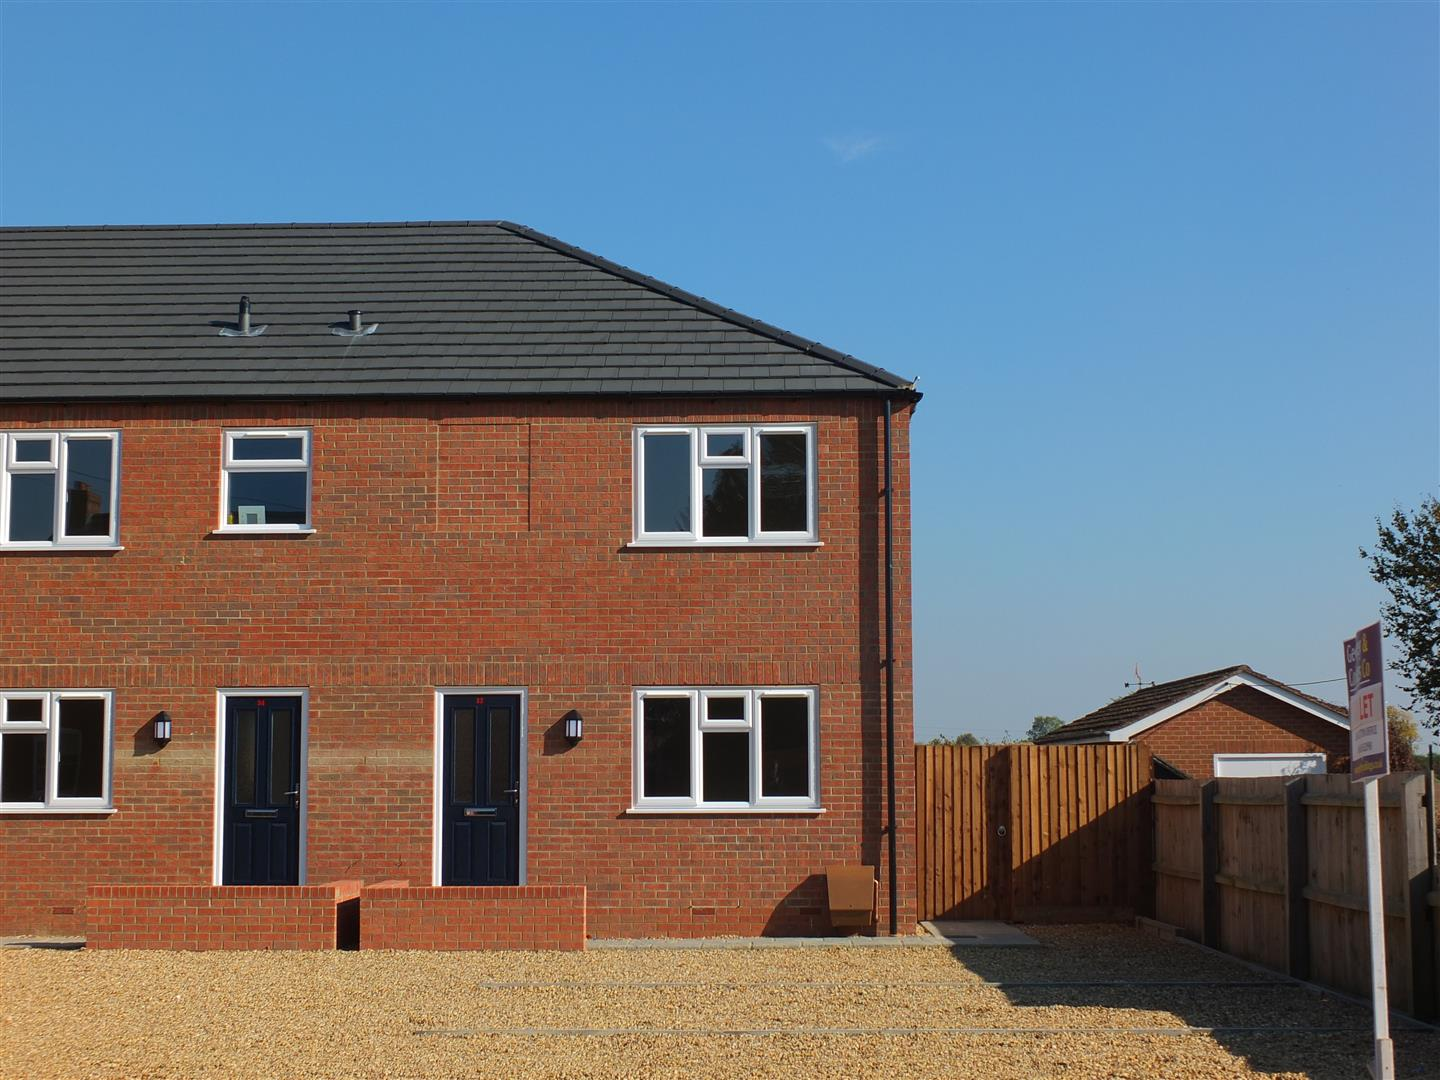 2 bed house to rent in Long Sutton, PE12 9LE  - Property Image 1